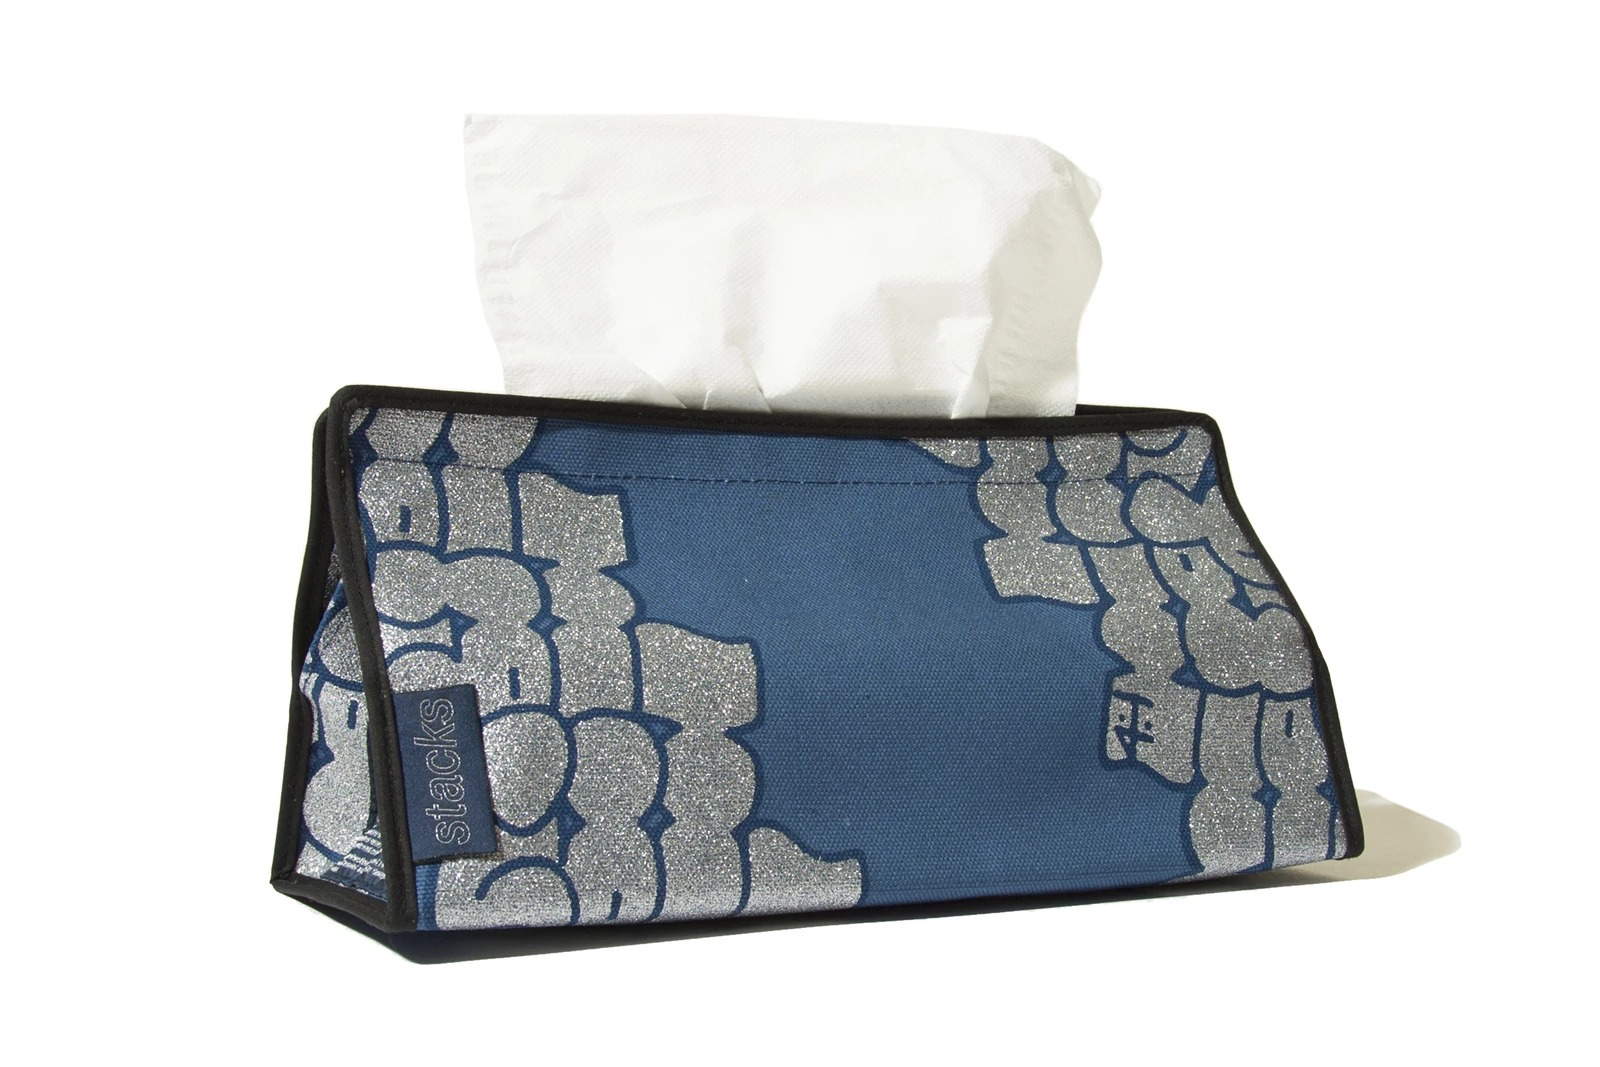 fabrick-x-blackeyepatch-tissue-box-case_p2